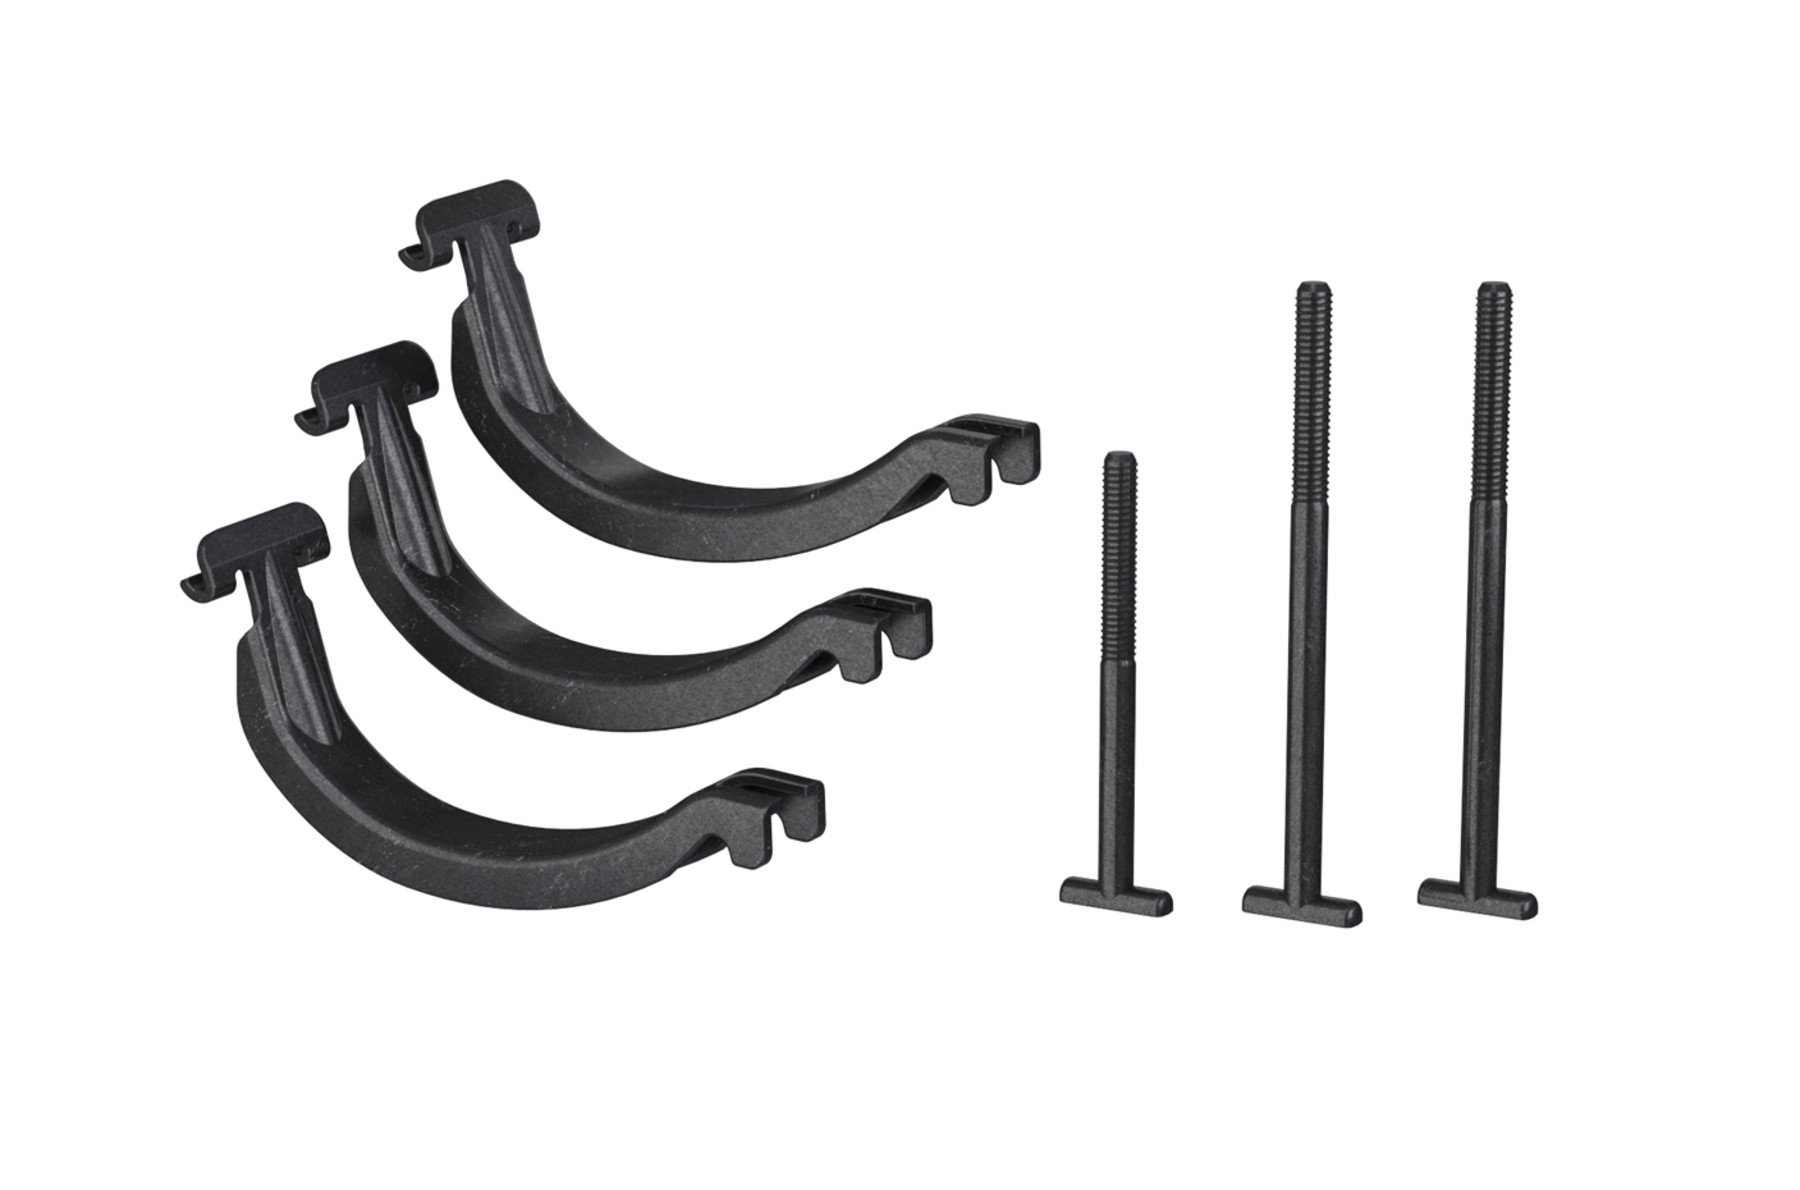 Thule Bike Rack Around the Bar Adapter 8898